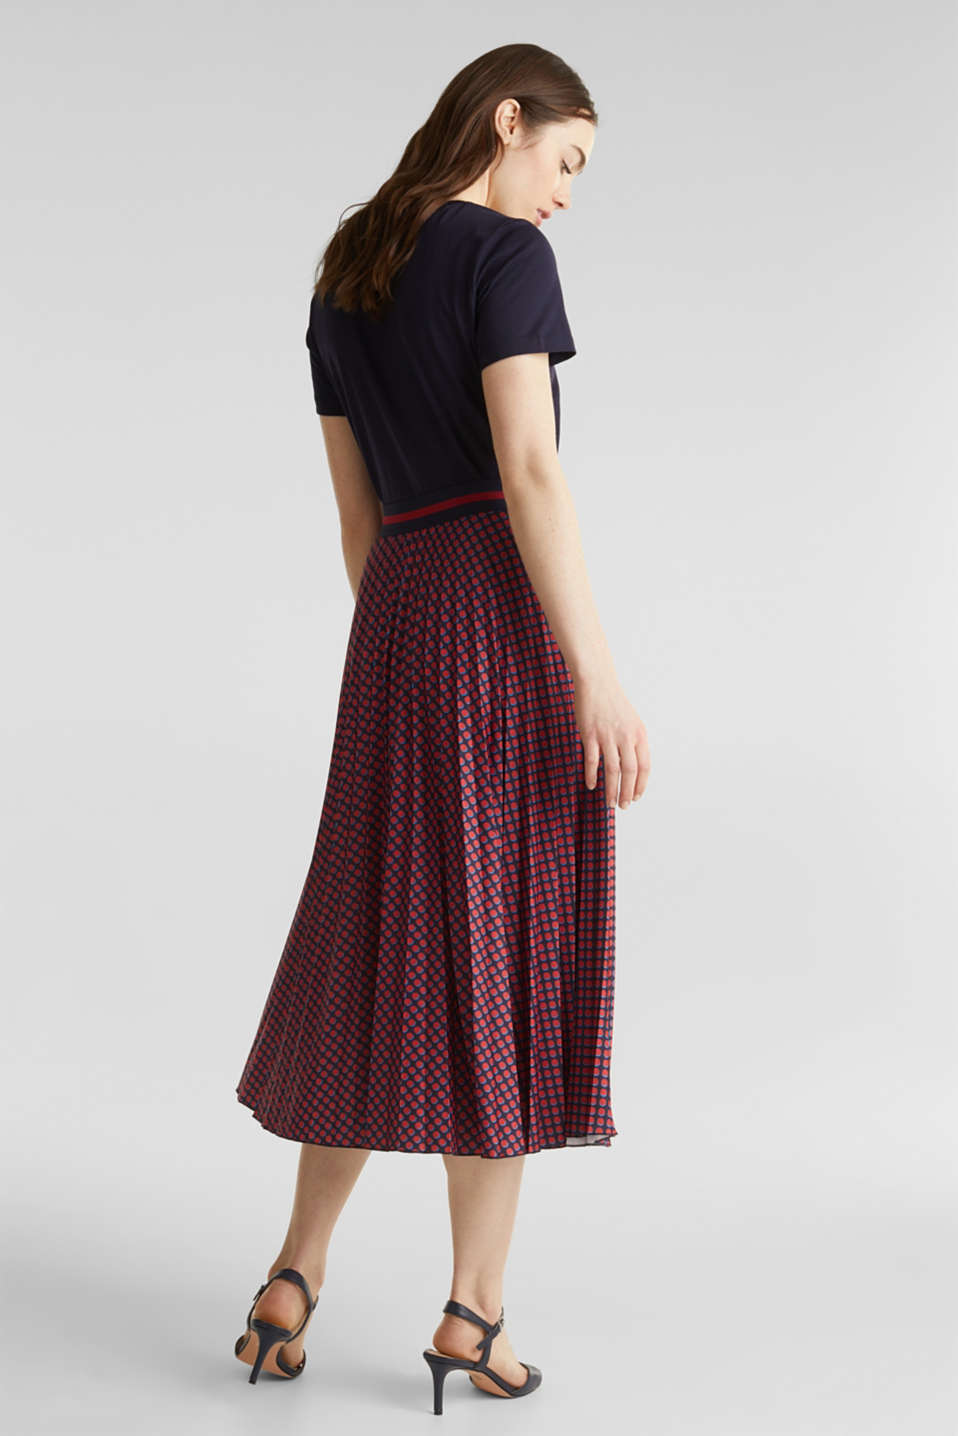 Stretch jersey skirt with accordion pleats, NAVY 4, detail image number 3